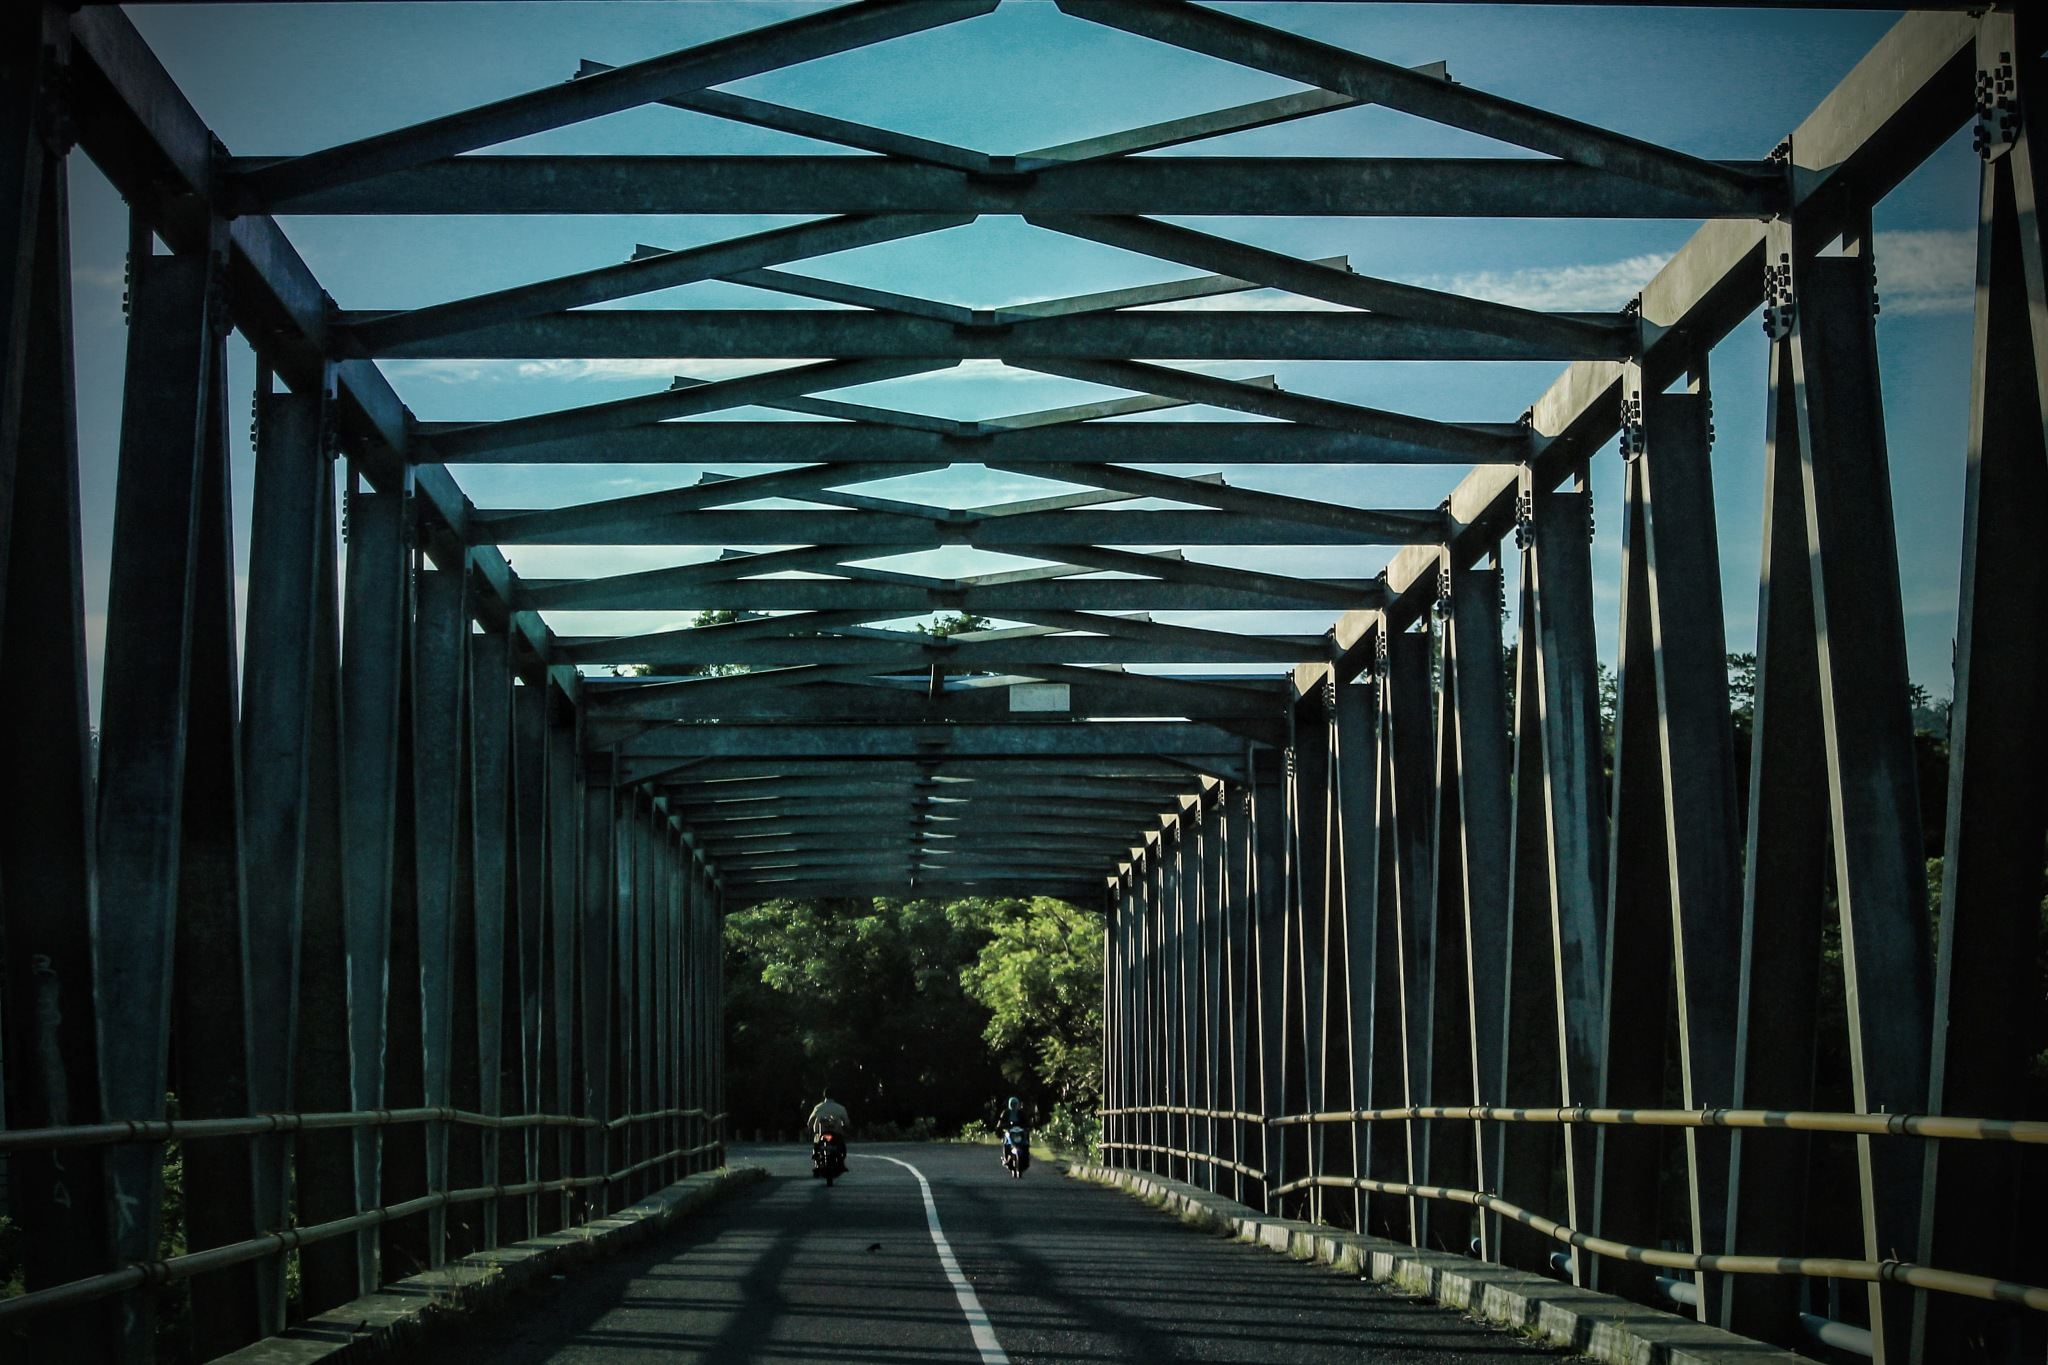 Bridge by Yosua Mozes